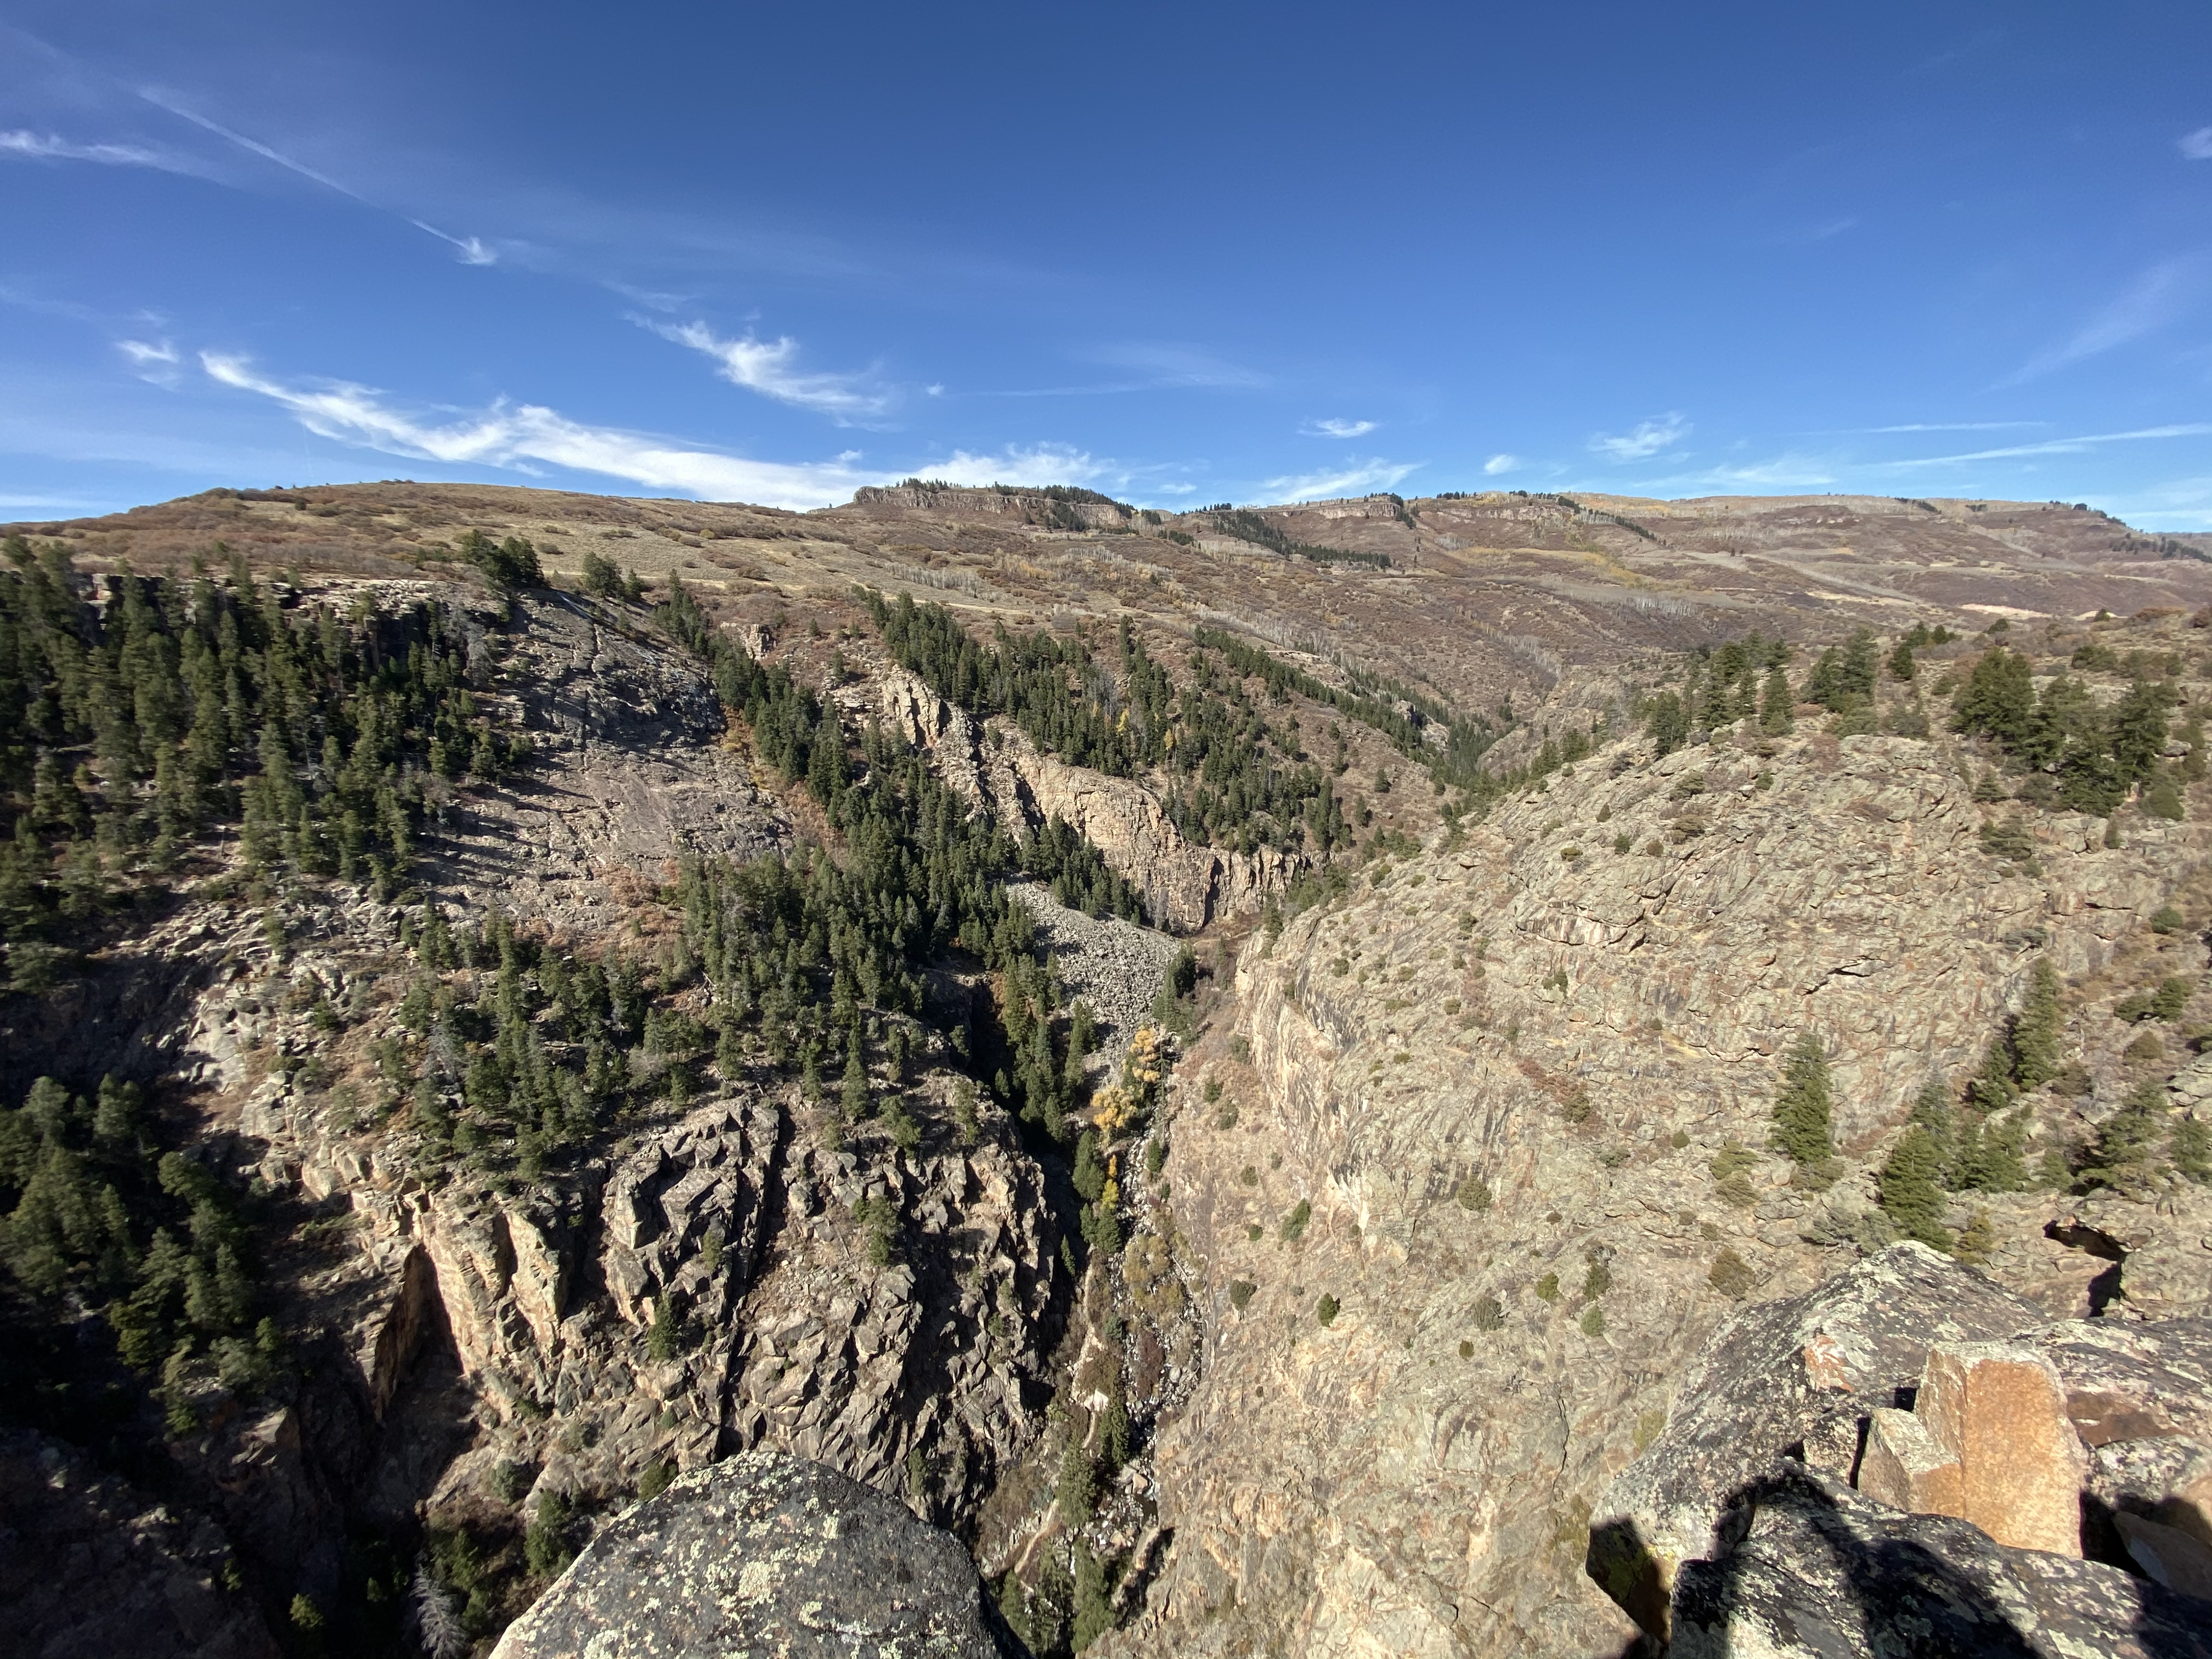 Looking up the Curacanti Creek Canyon from the Pioneer Point overlook.